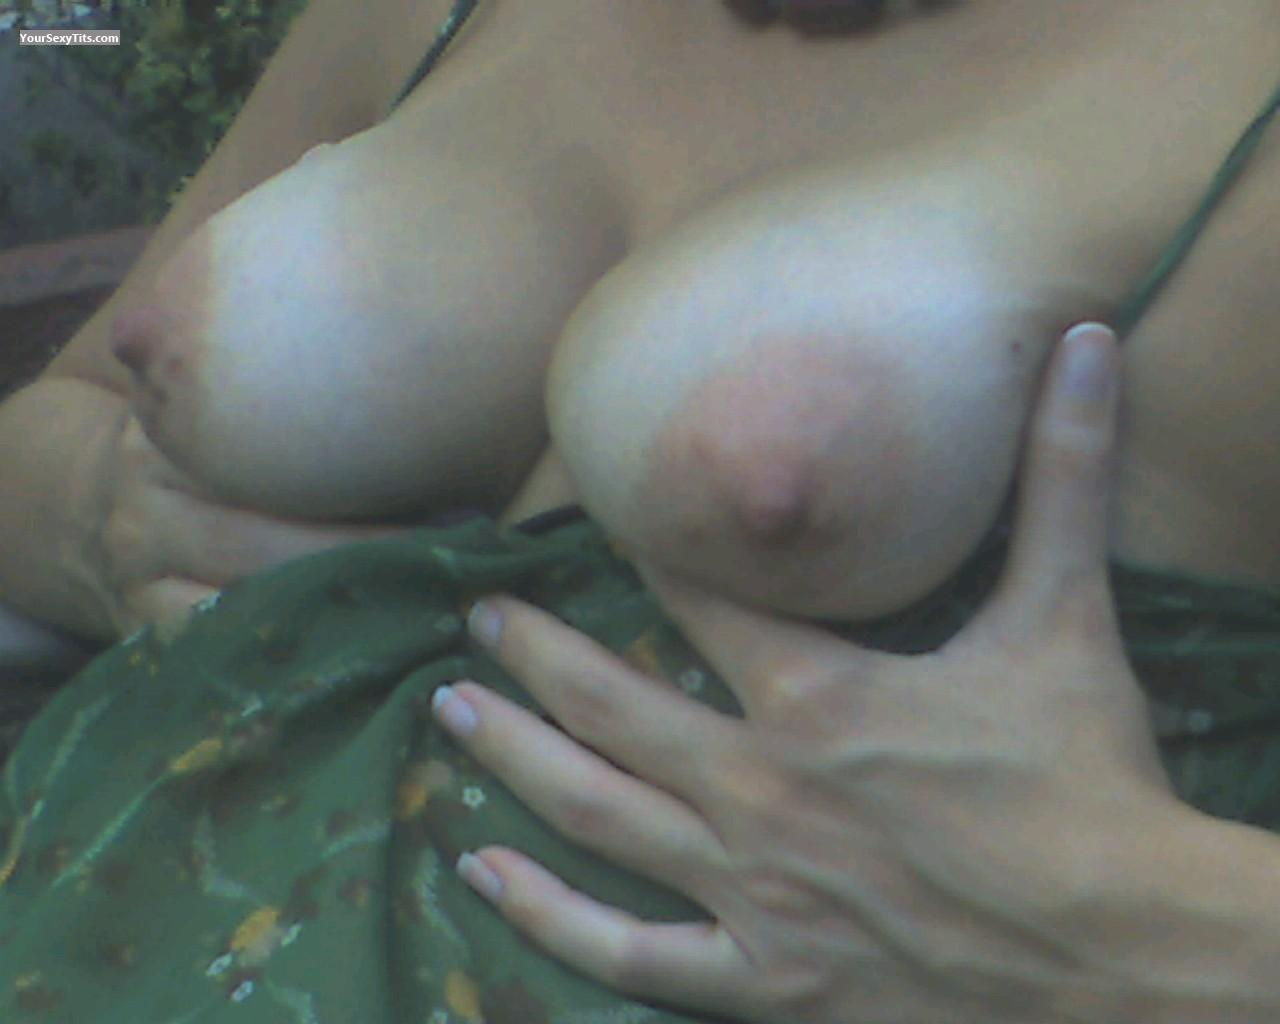 Tit Flash: Medium Tits - Tetas from Puerto Rico